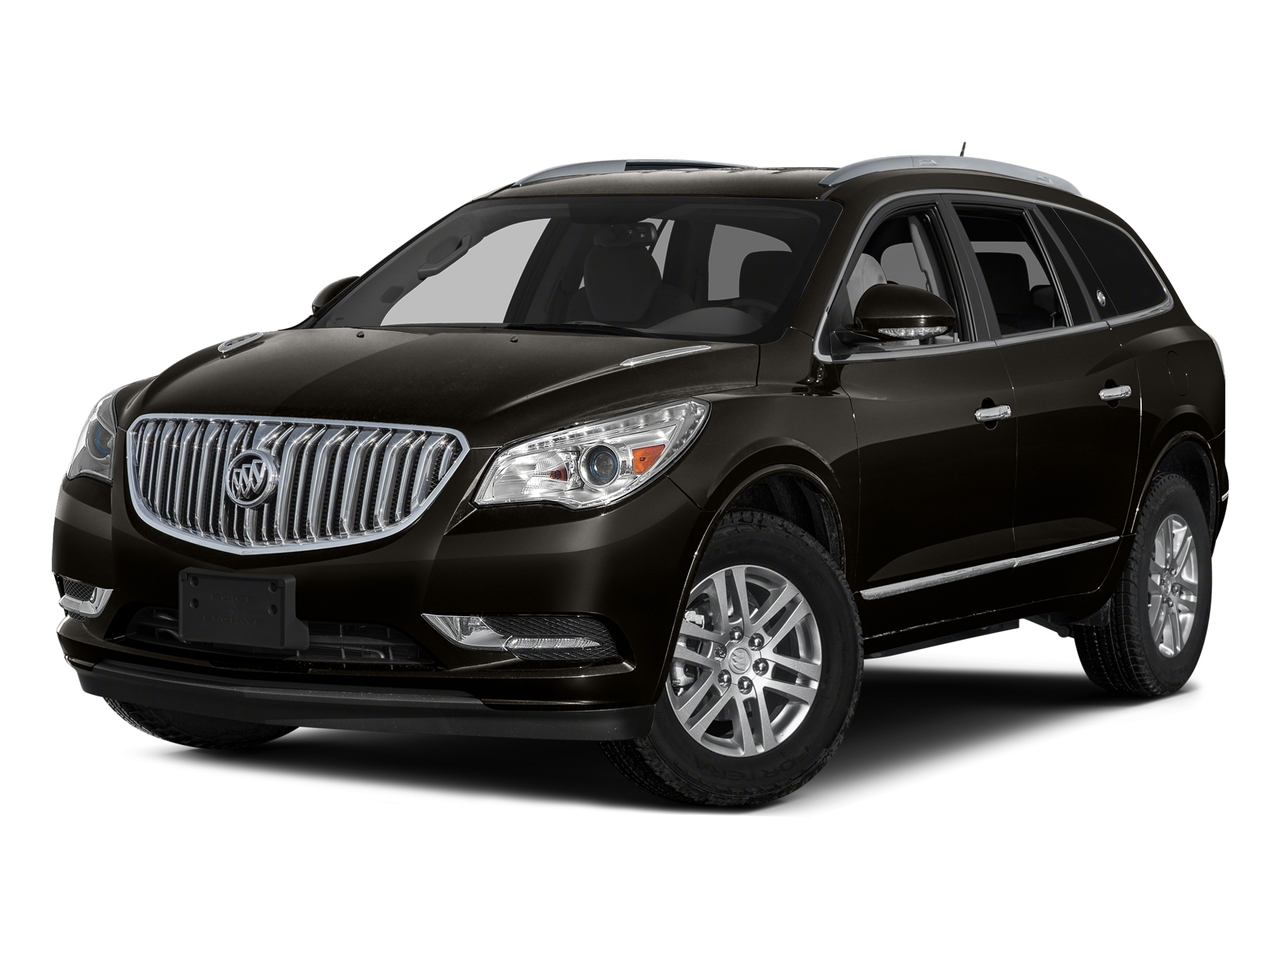 2017 Buick Enclave LEATHER GROUP SUV Slide